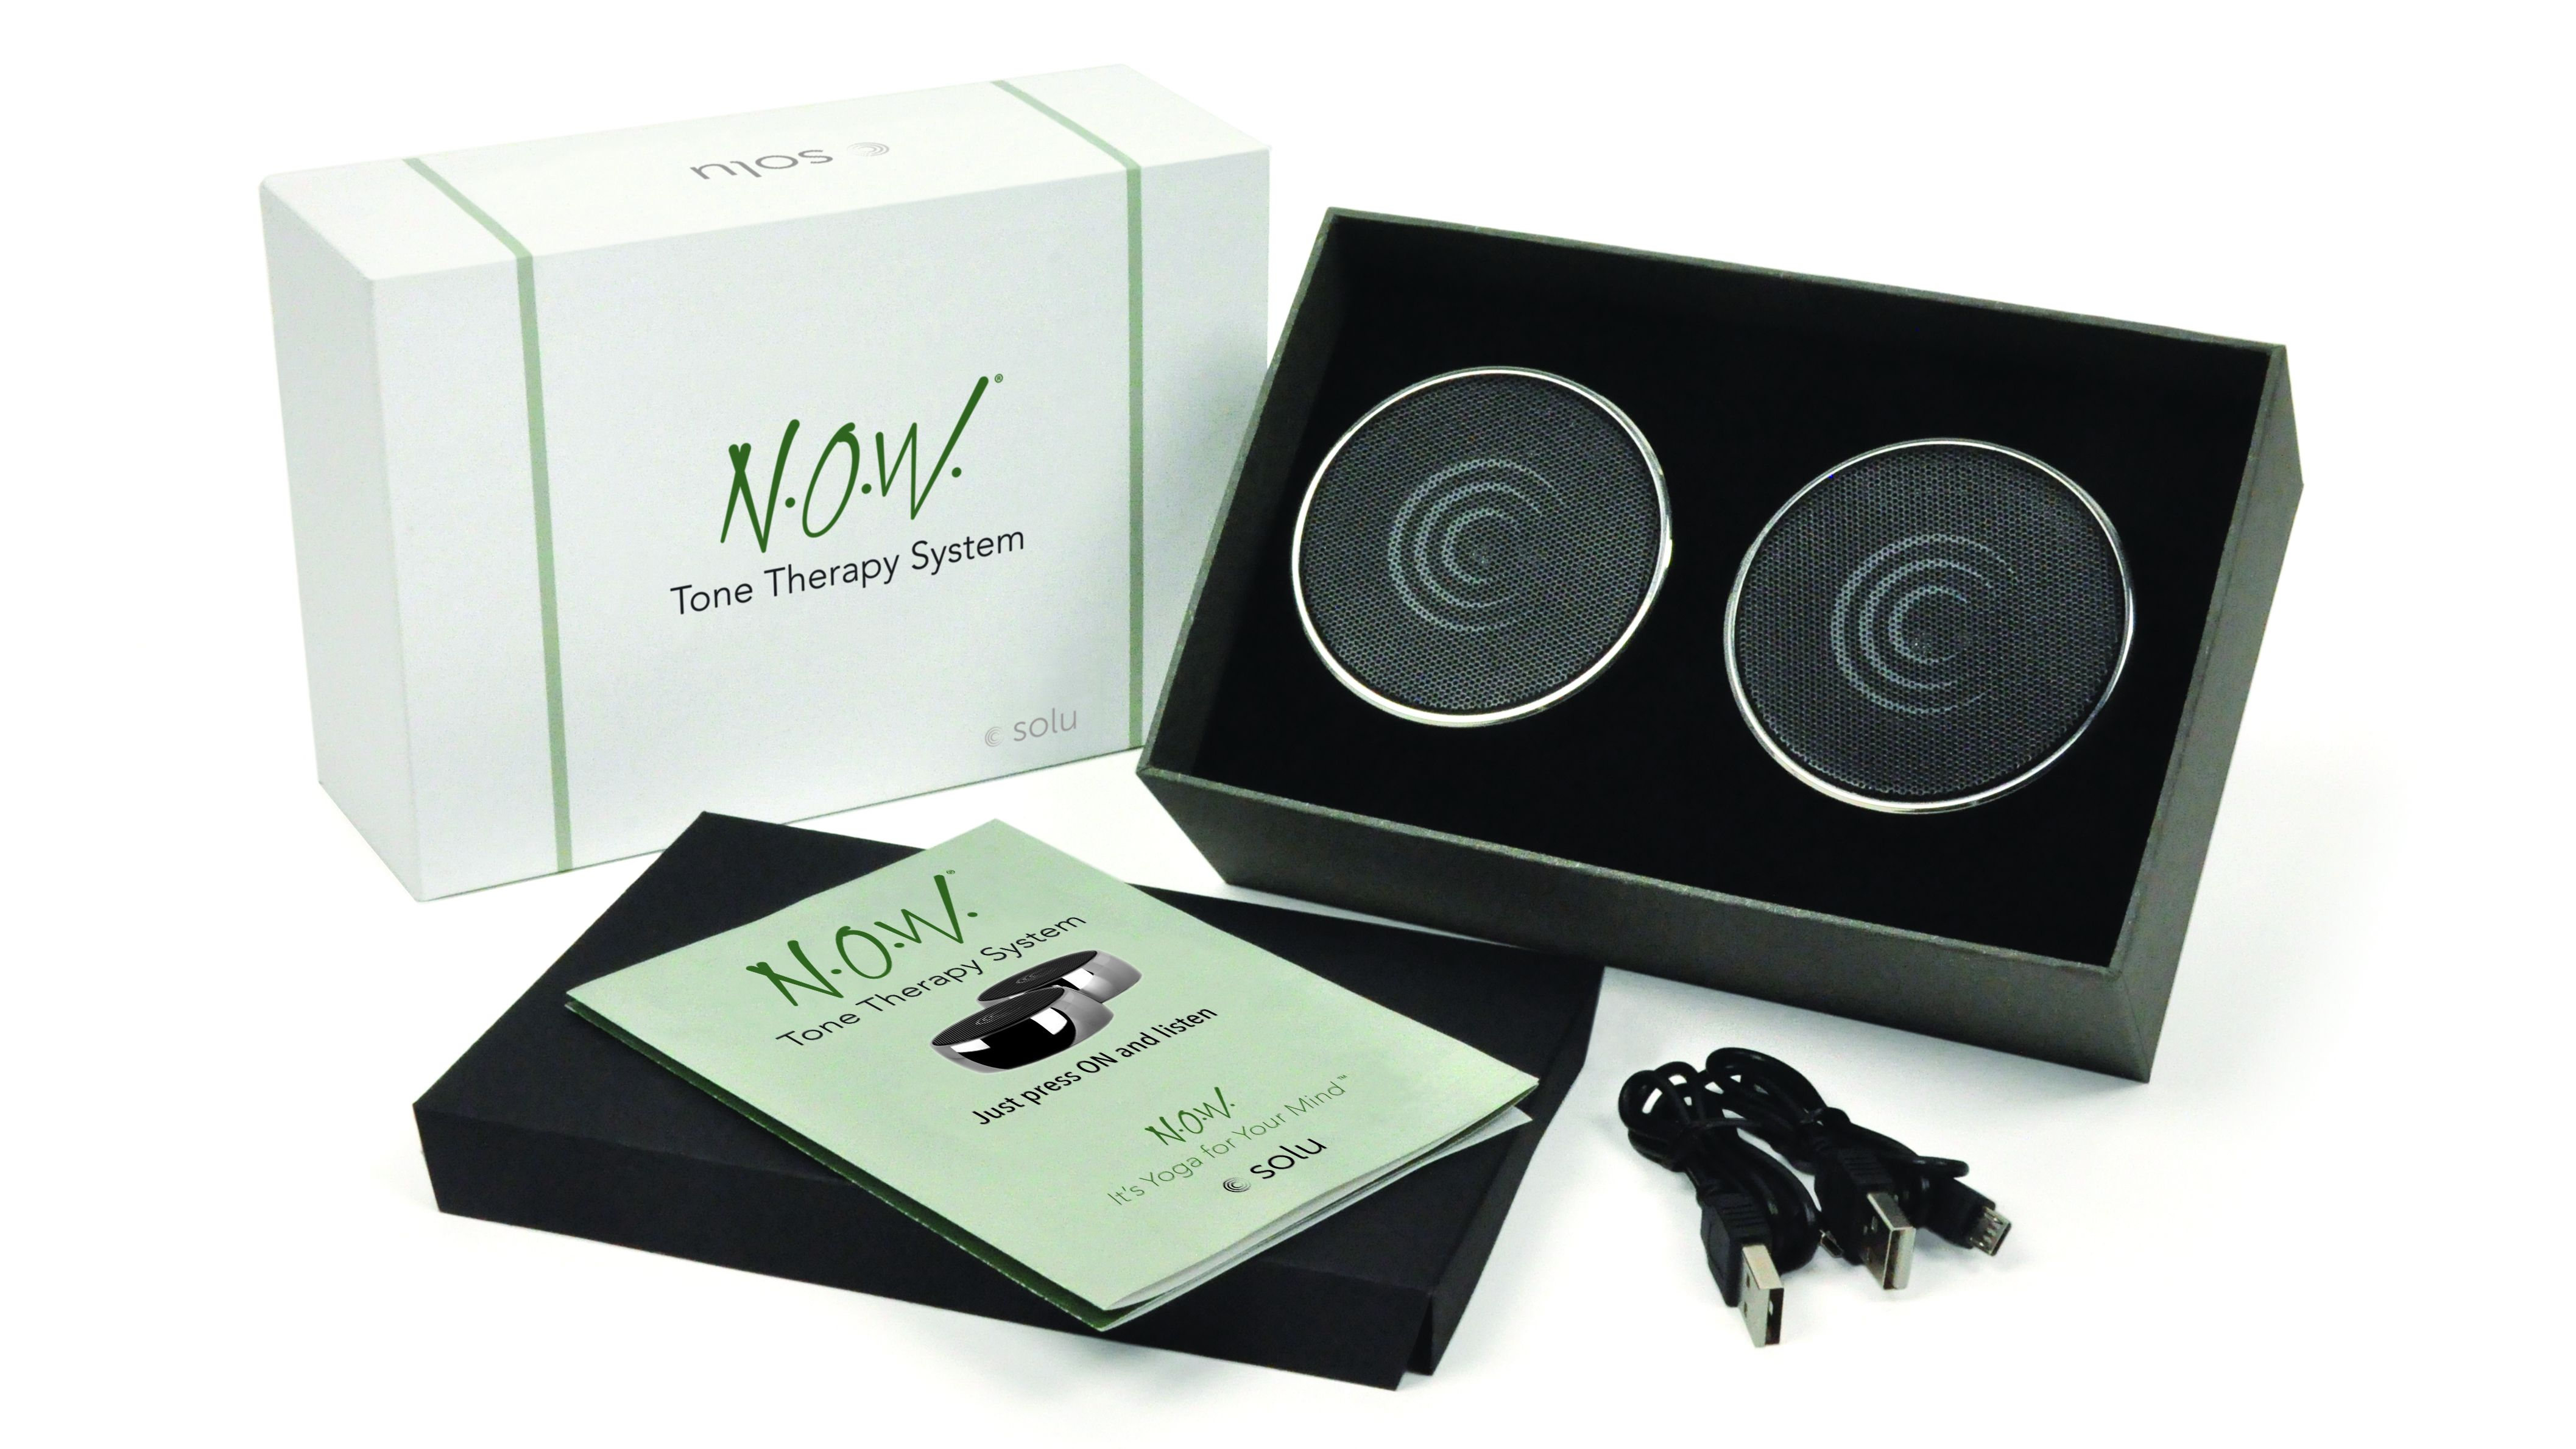 Your Questions & Our Answers about the N.O.W. Tone Therapy System